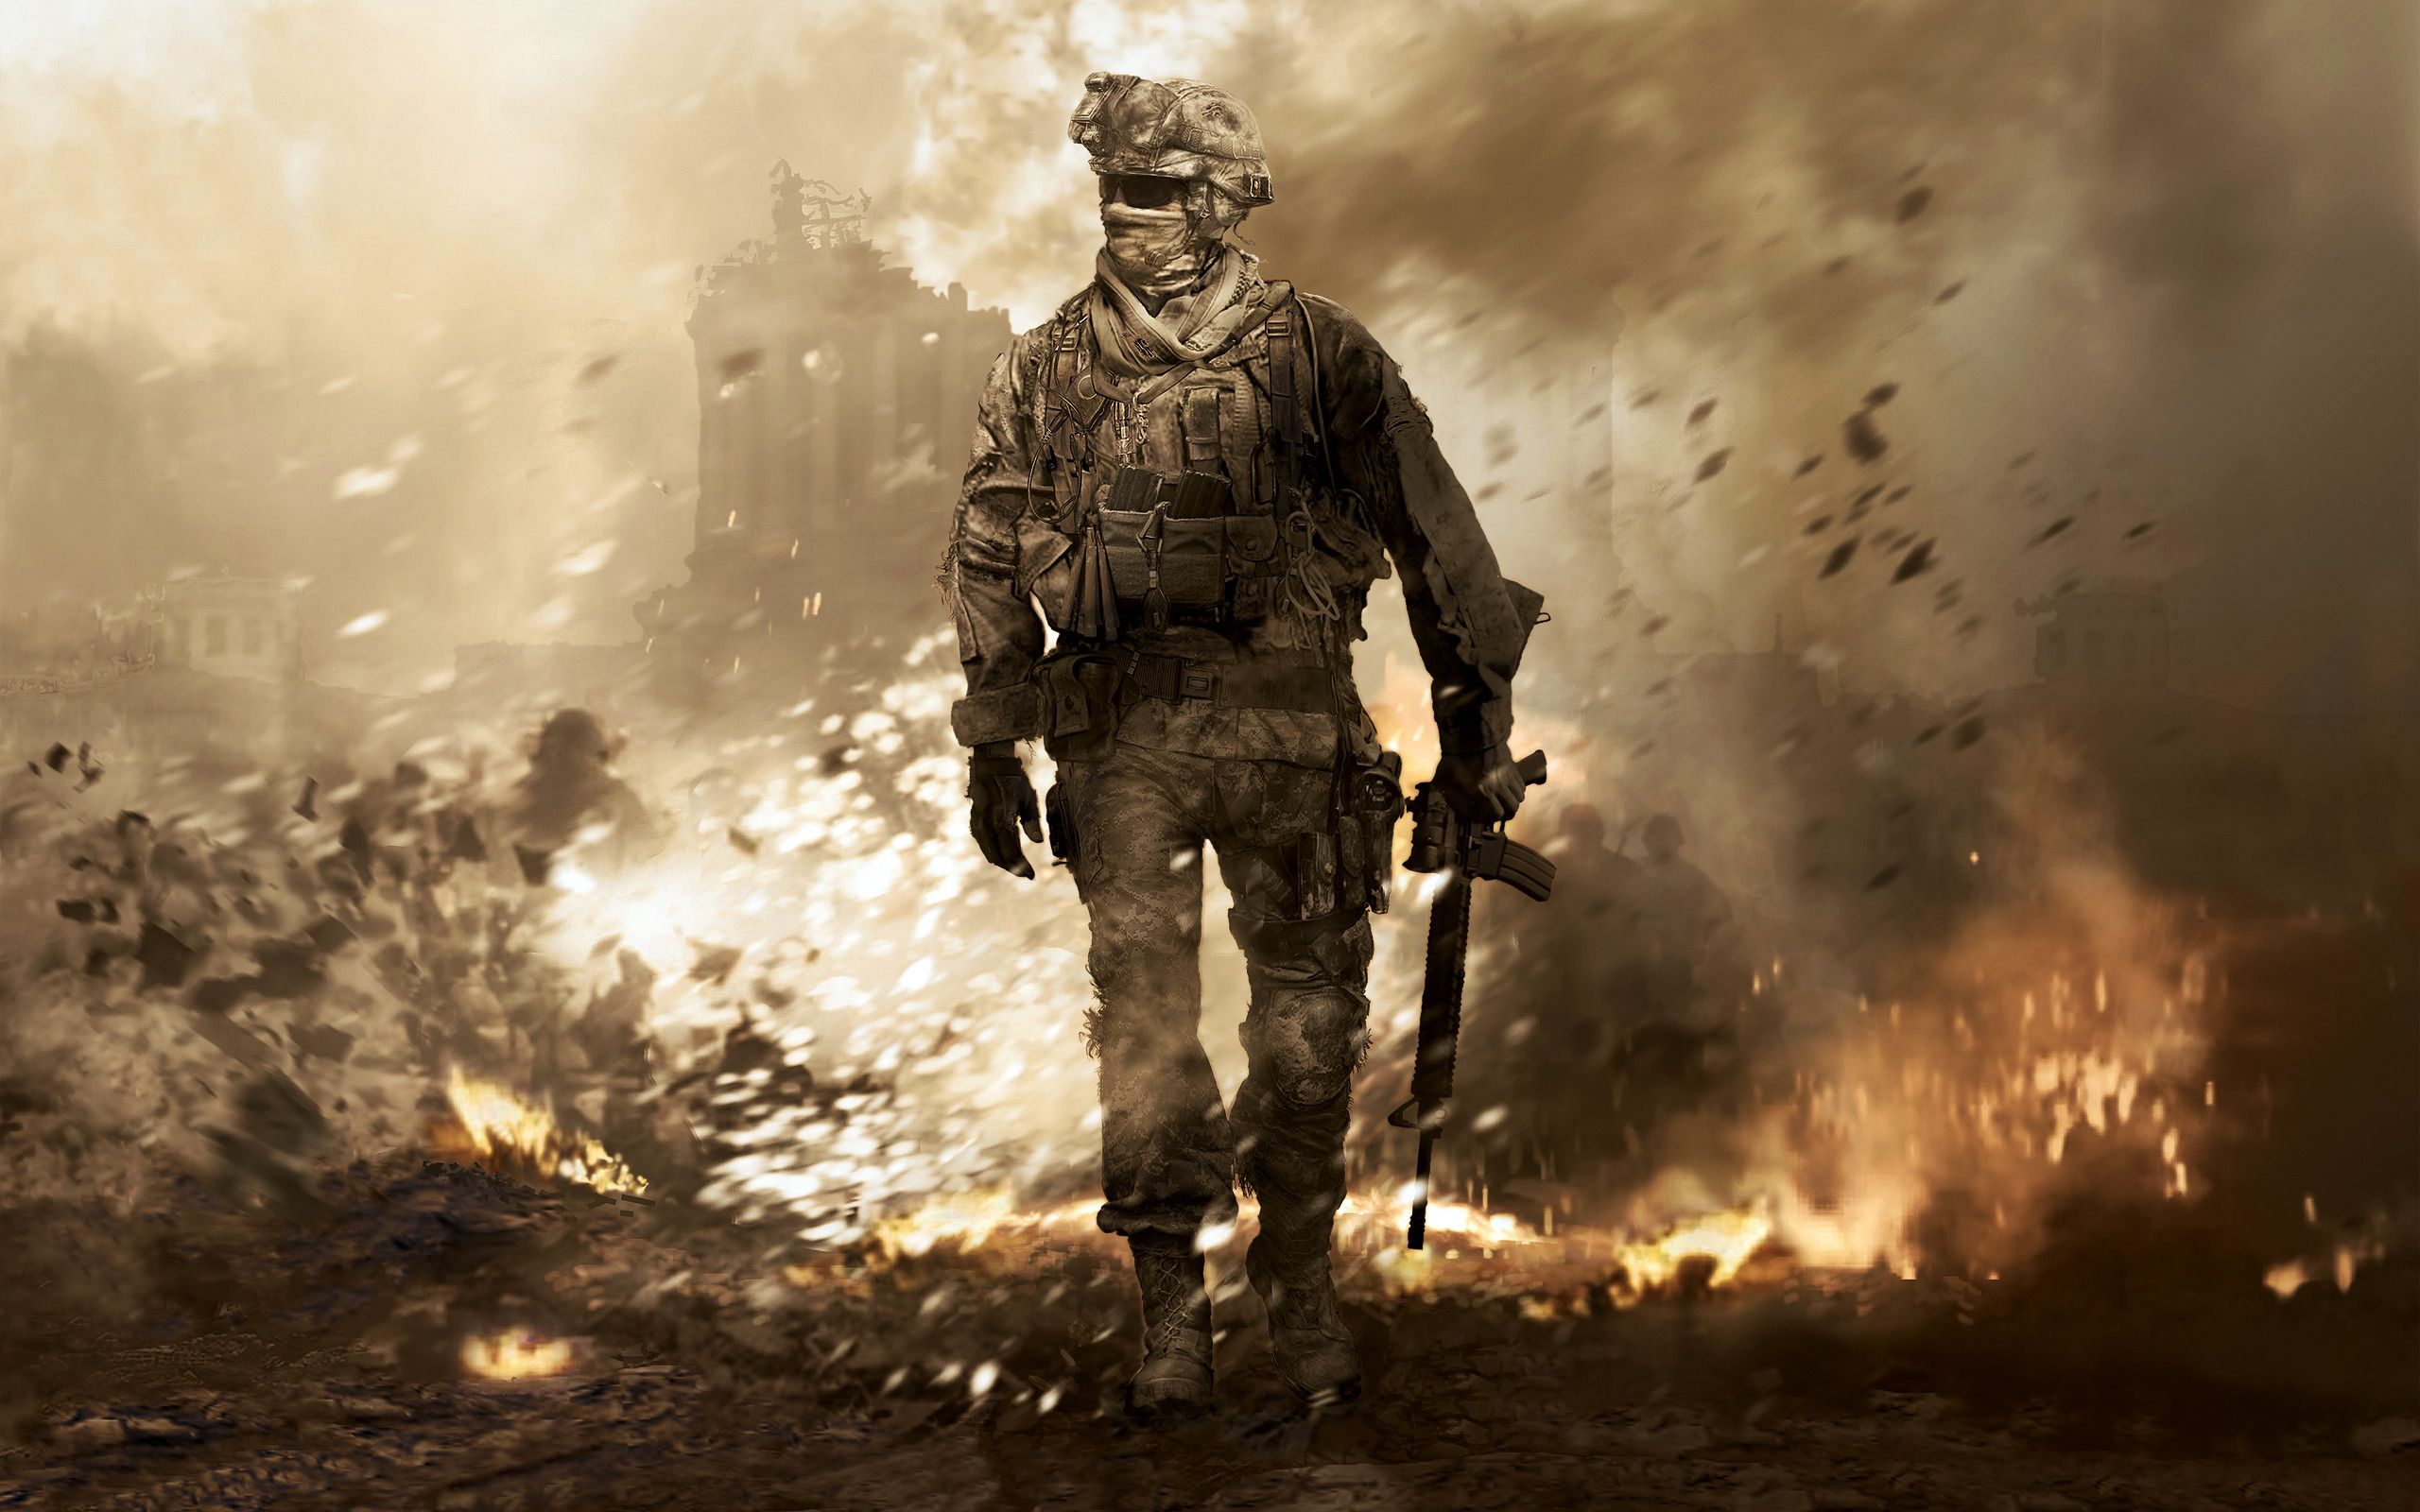 Hd Call Of Duty Modern Warfare Wallpapers And Photos Hd